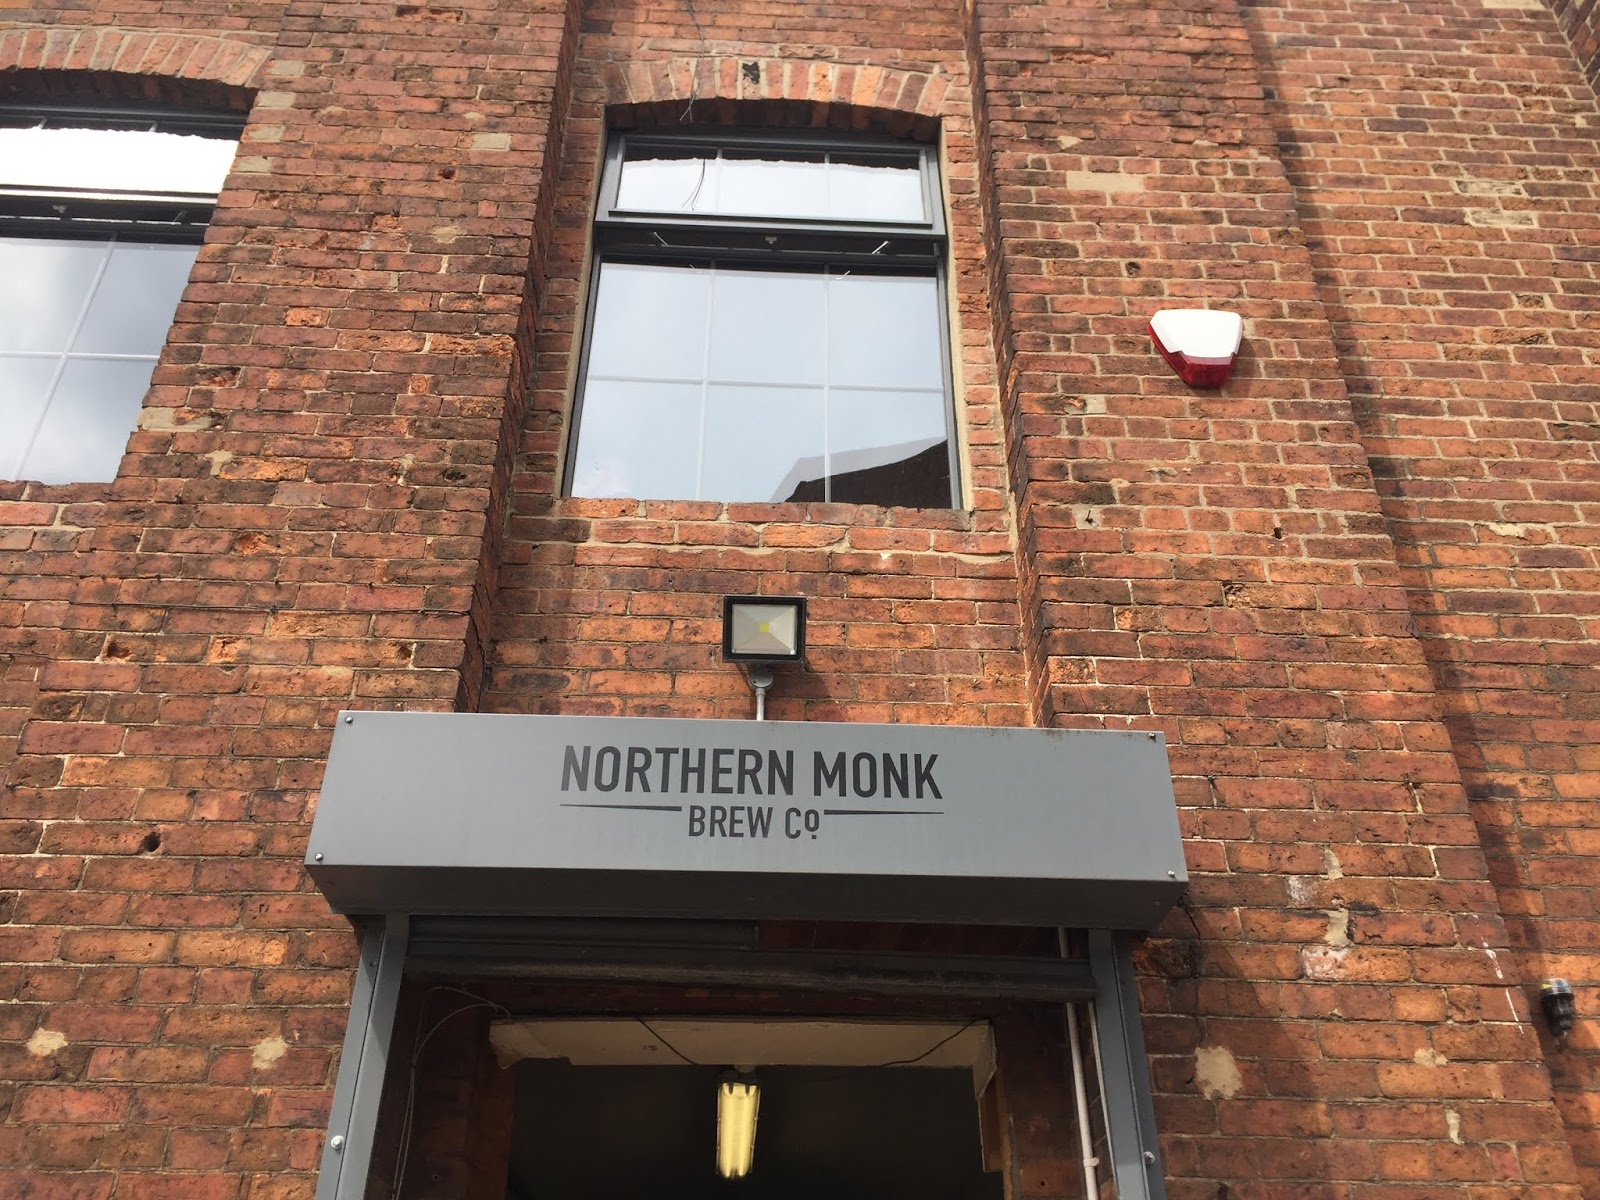 Northern Monk Brew Co in Leeds